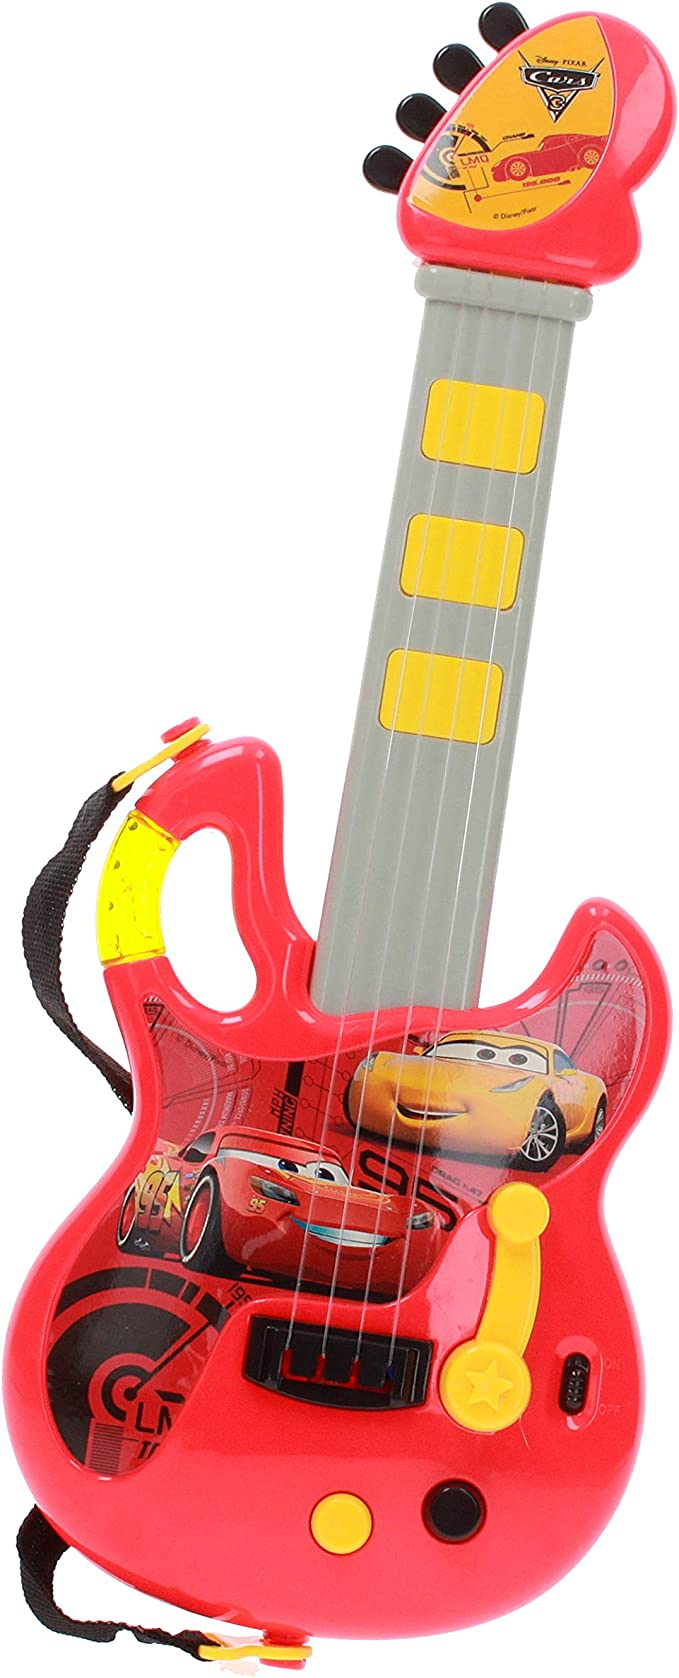 Cars- Guitarra Infantil (Claudio Reig 5324): Amazon.es: Juguetes y ...